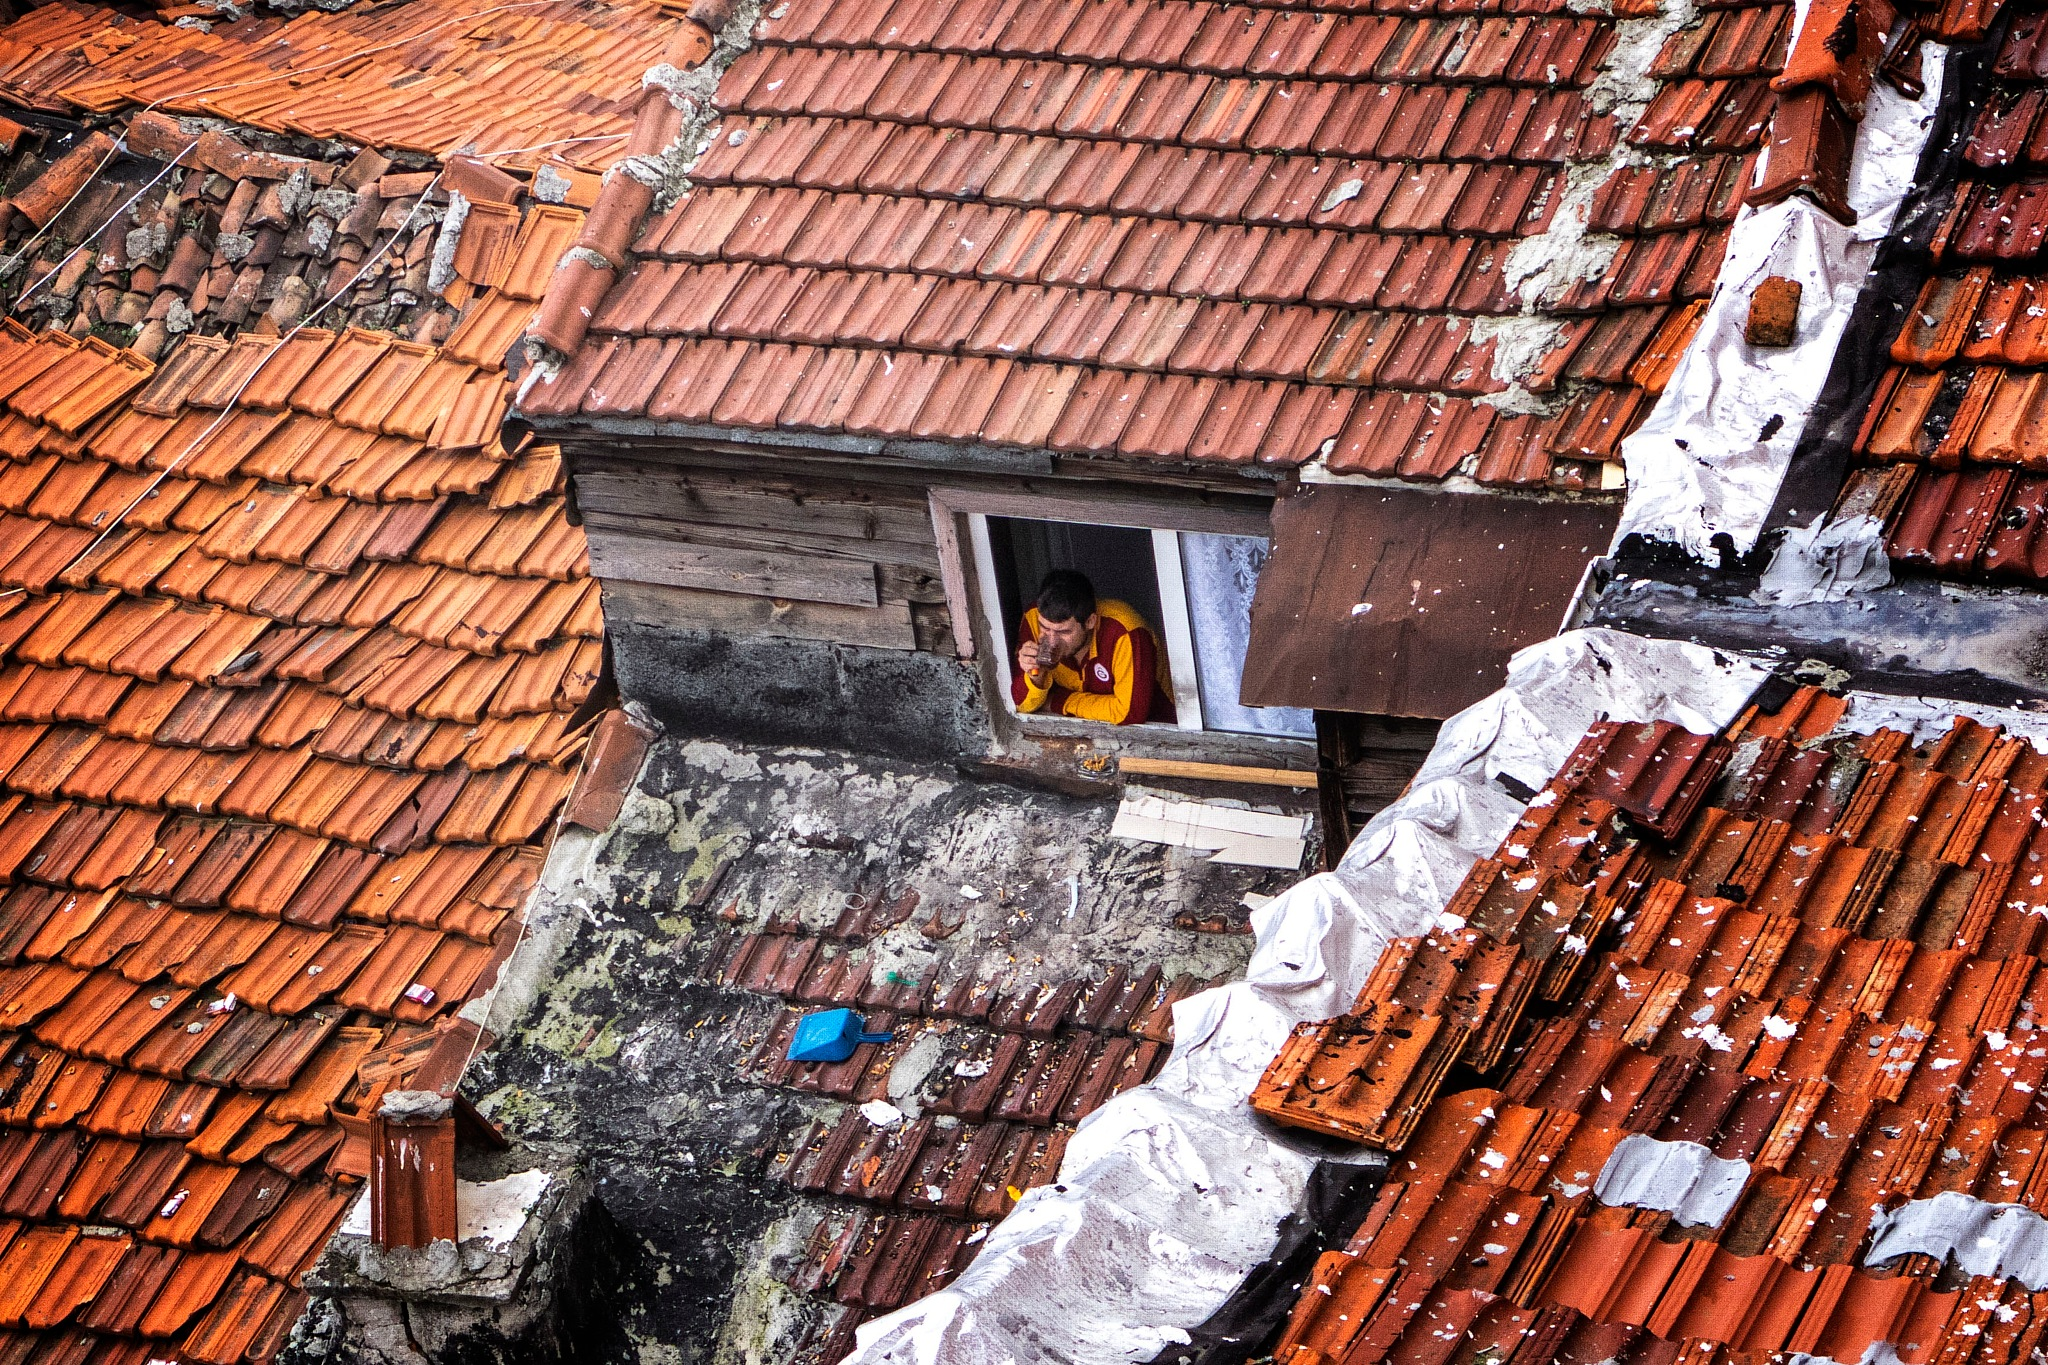 Buildings and people by Eren Cevik